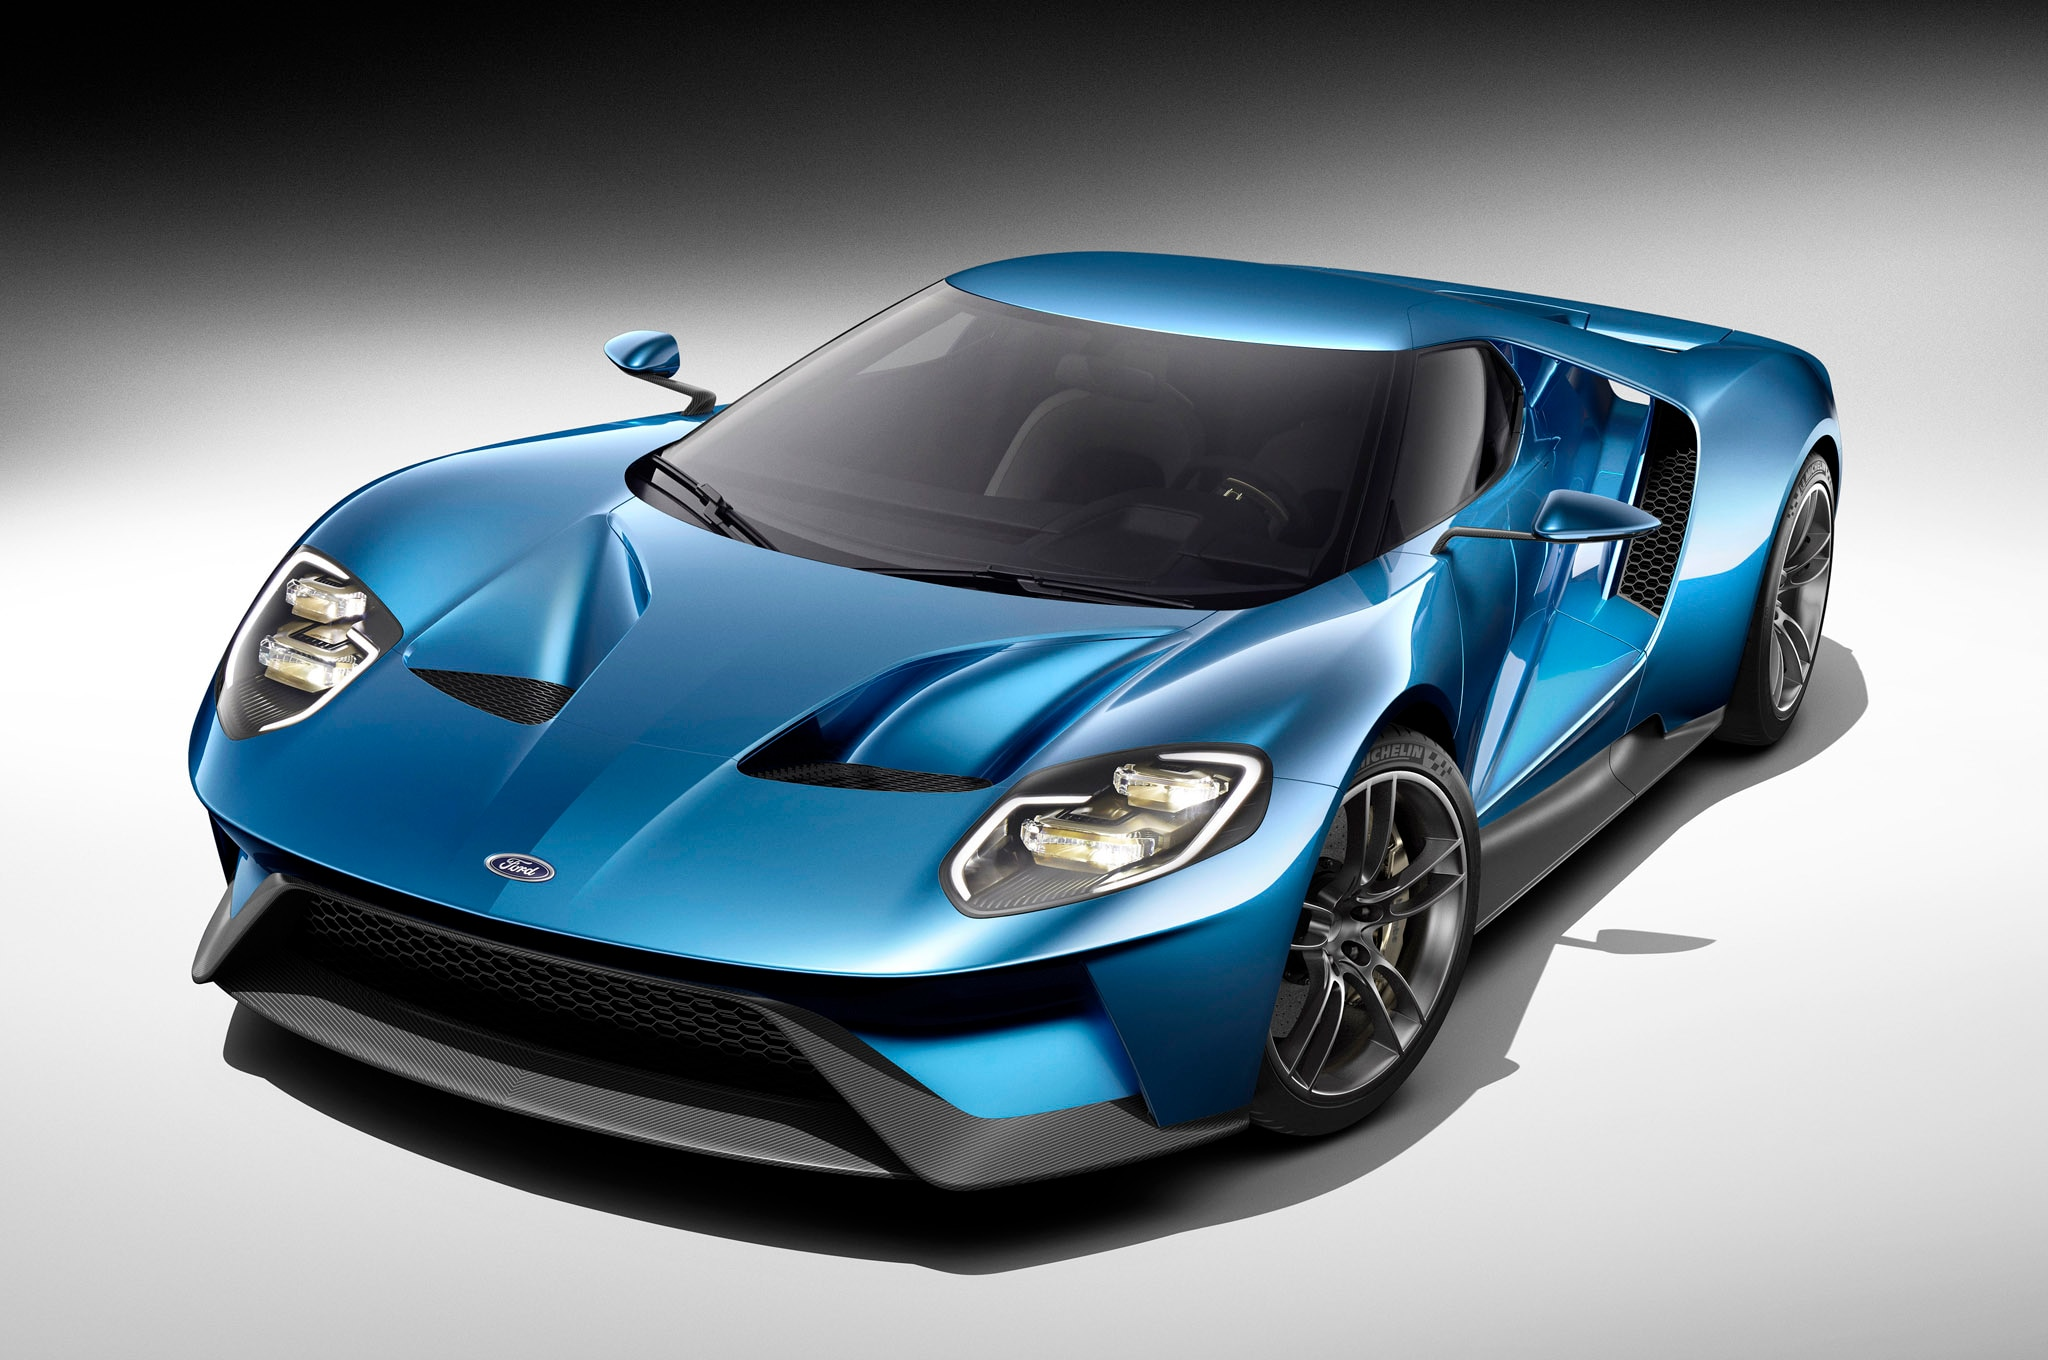 Todd Lassa & Behind the Scenes with the Engineers of the Ford GT markmcfarlin.com